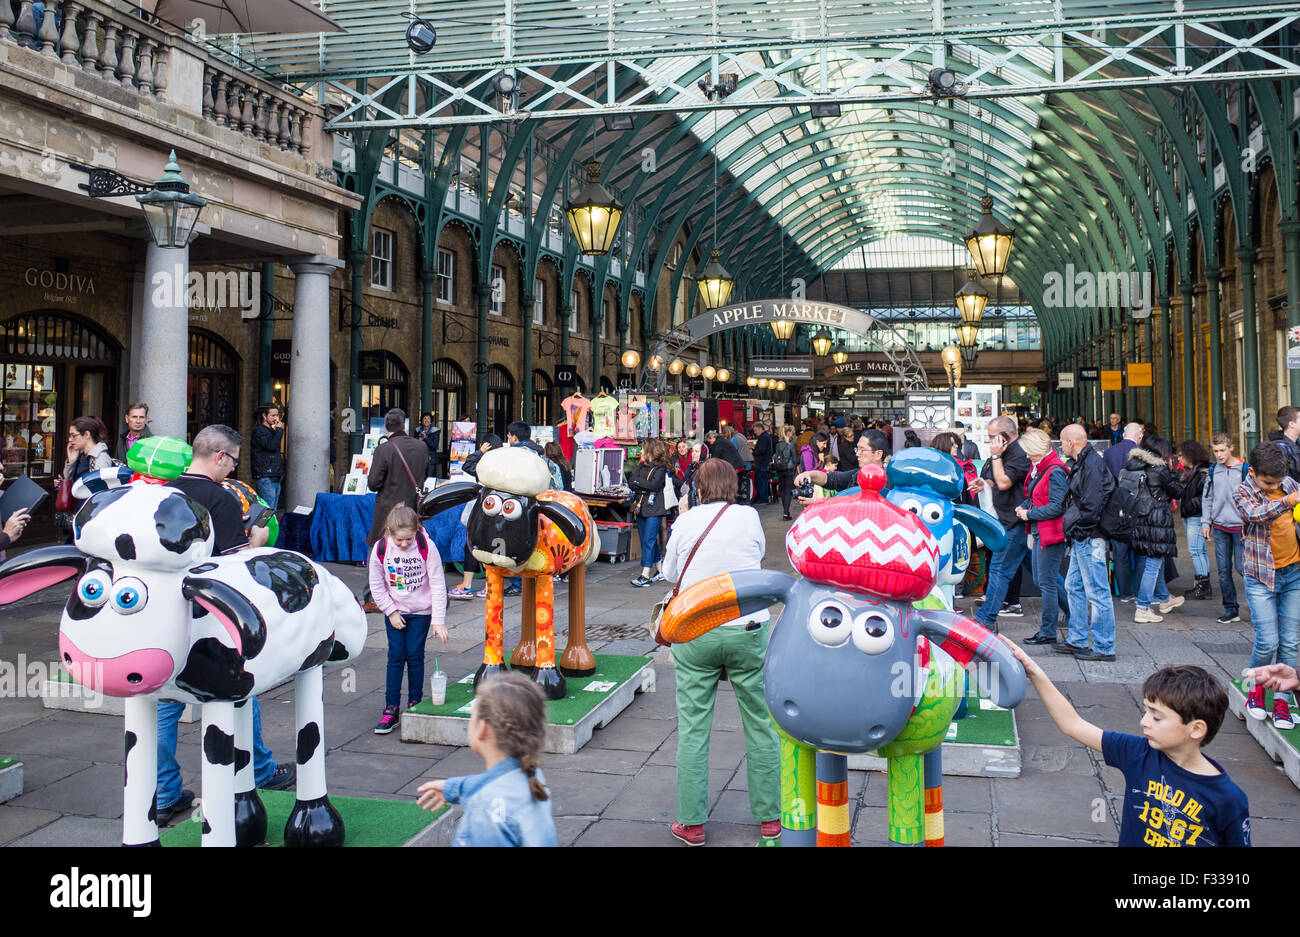 Shaun the Sheep in Covent Garden in London Britain - Stock Image